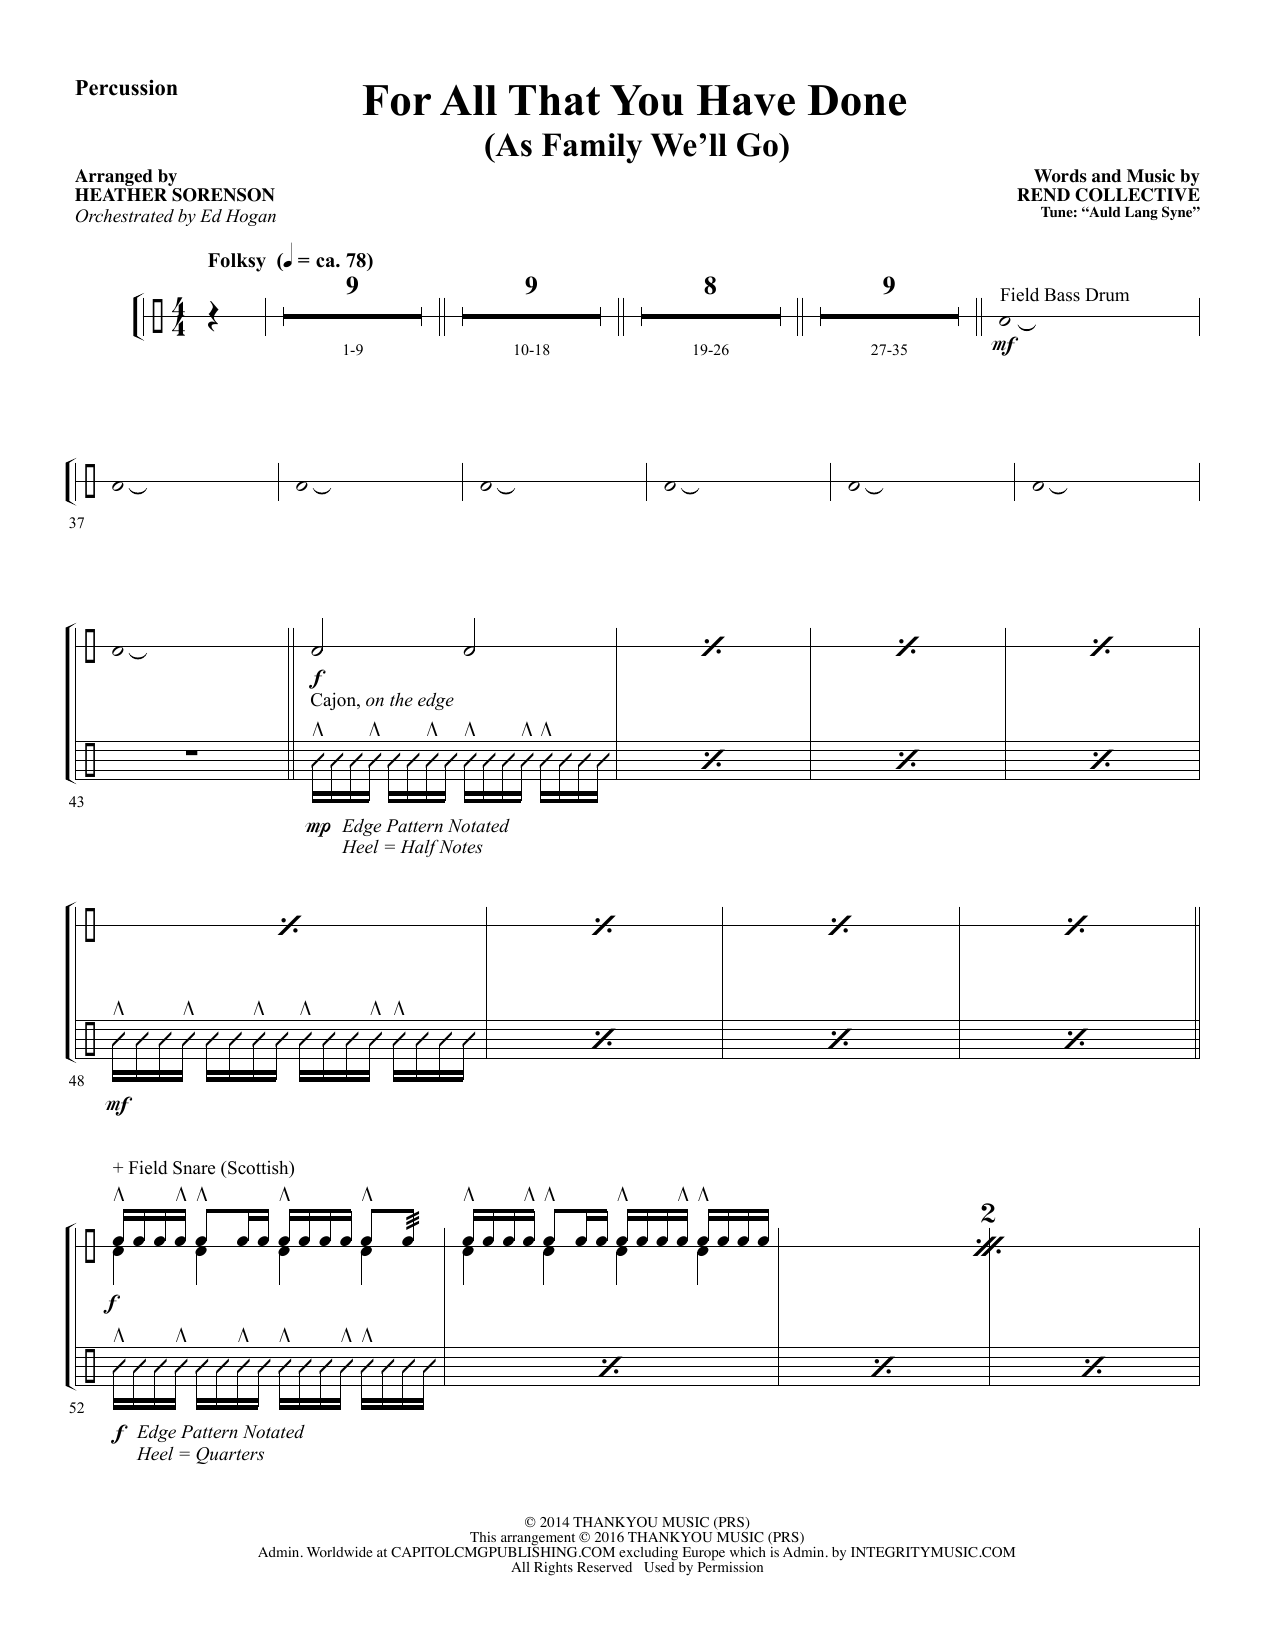 For All That You Have Done - Percussion Sheet Music